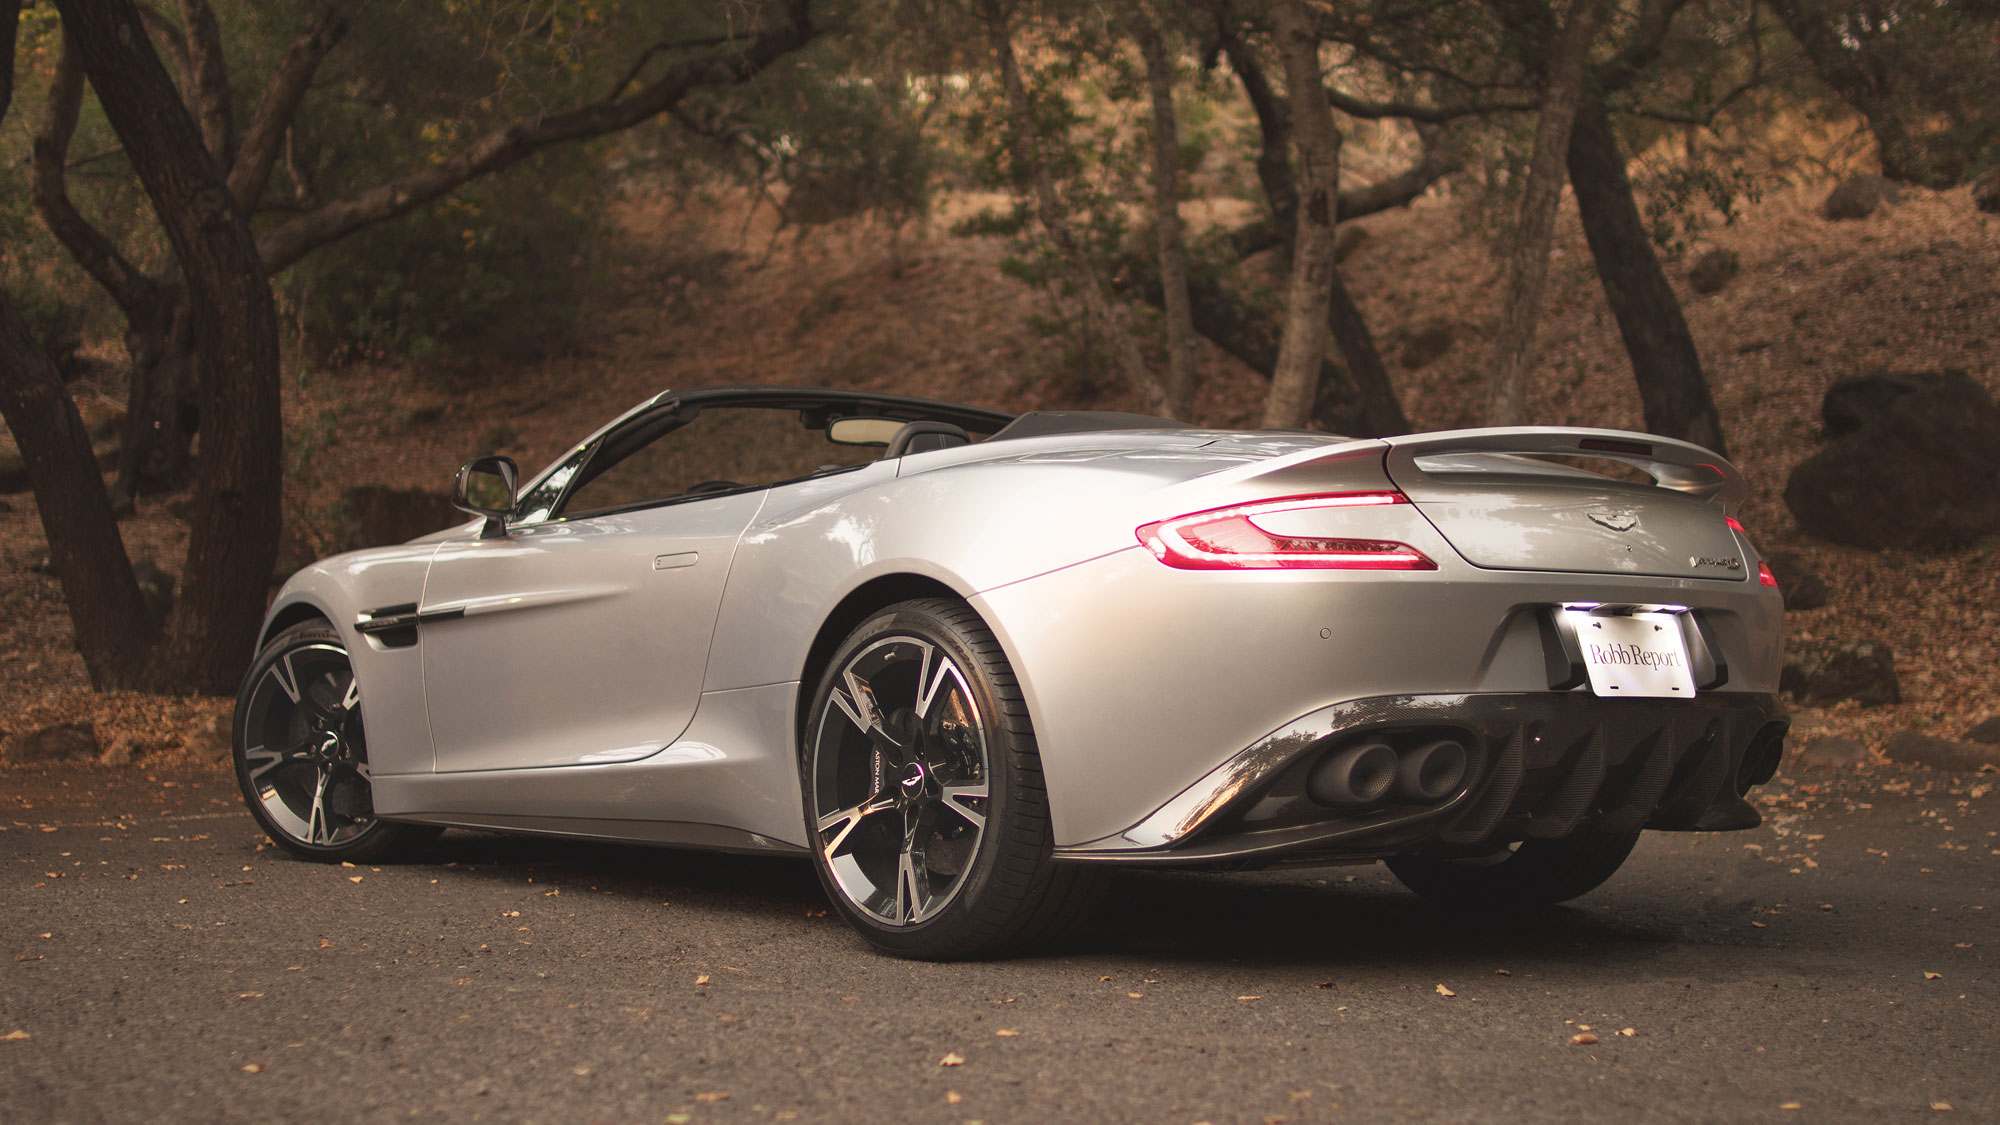 Aston Martin Vanquish S Volante The No 3 Robb Report Car Of The Year Robb Report